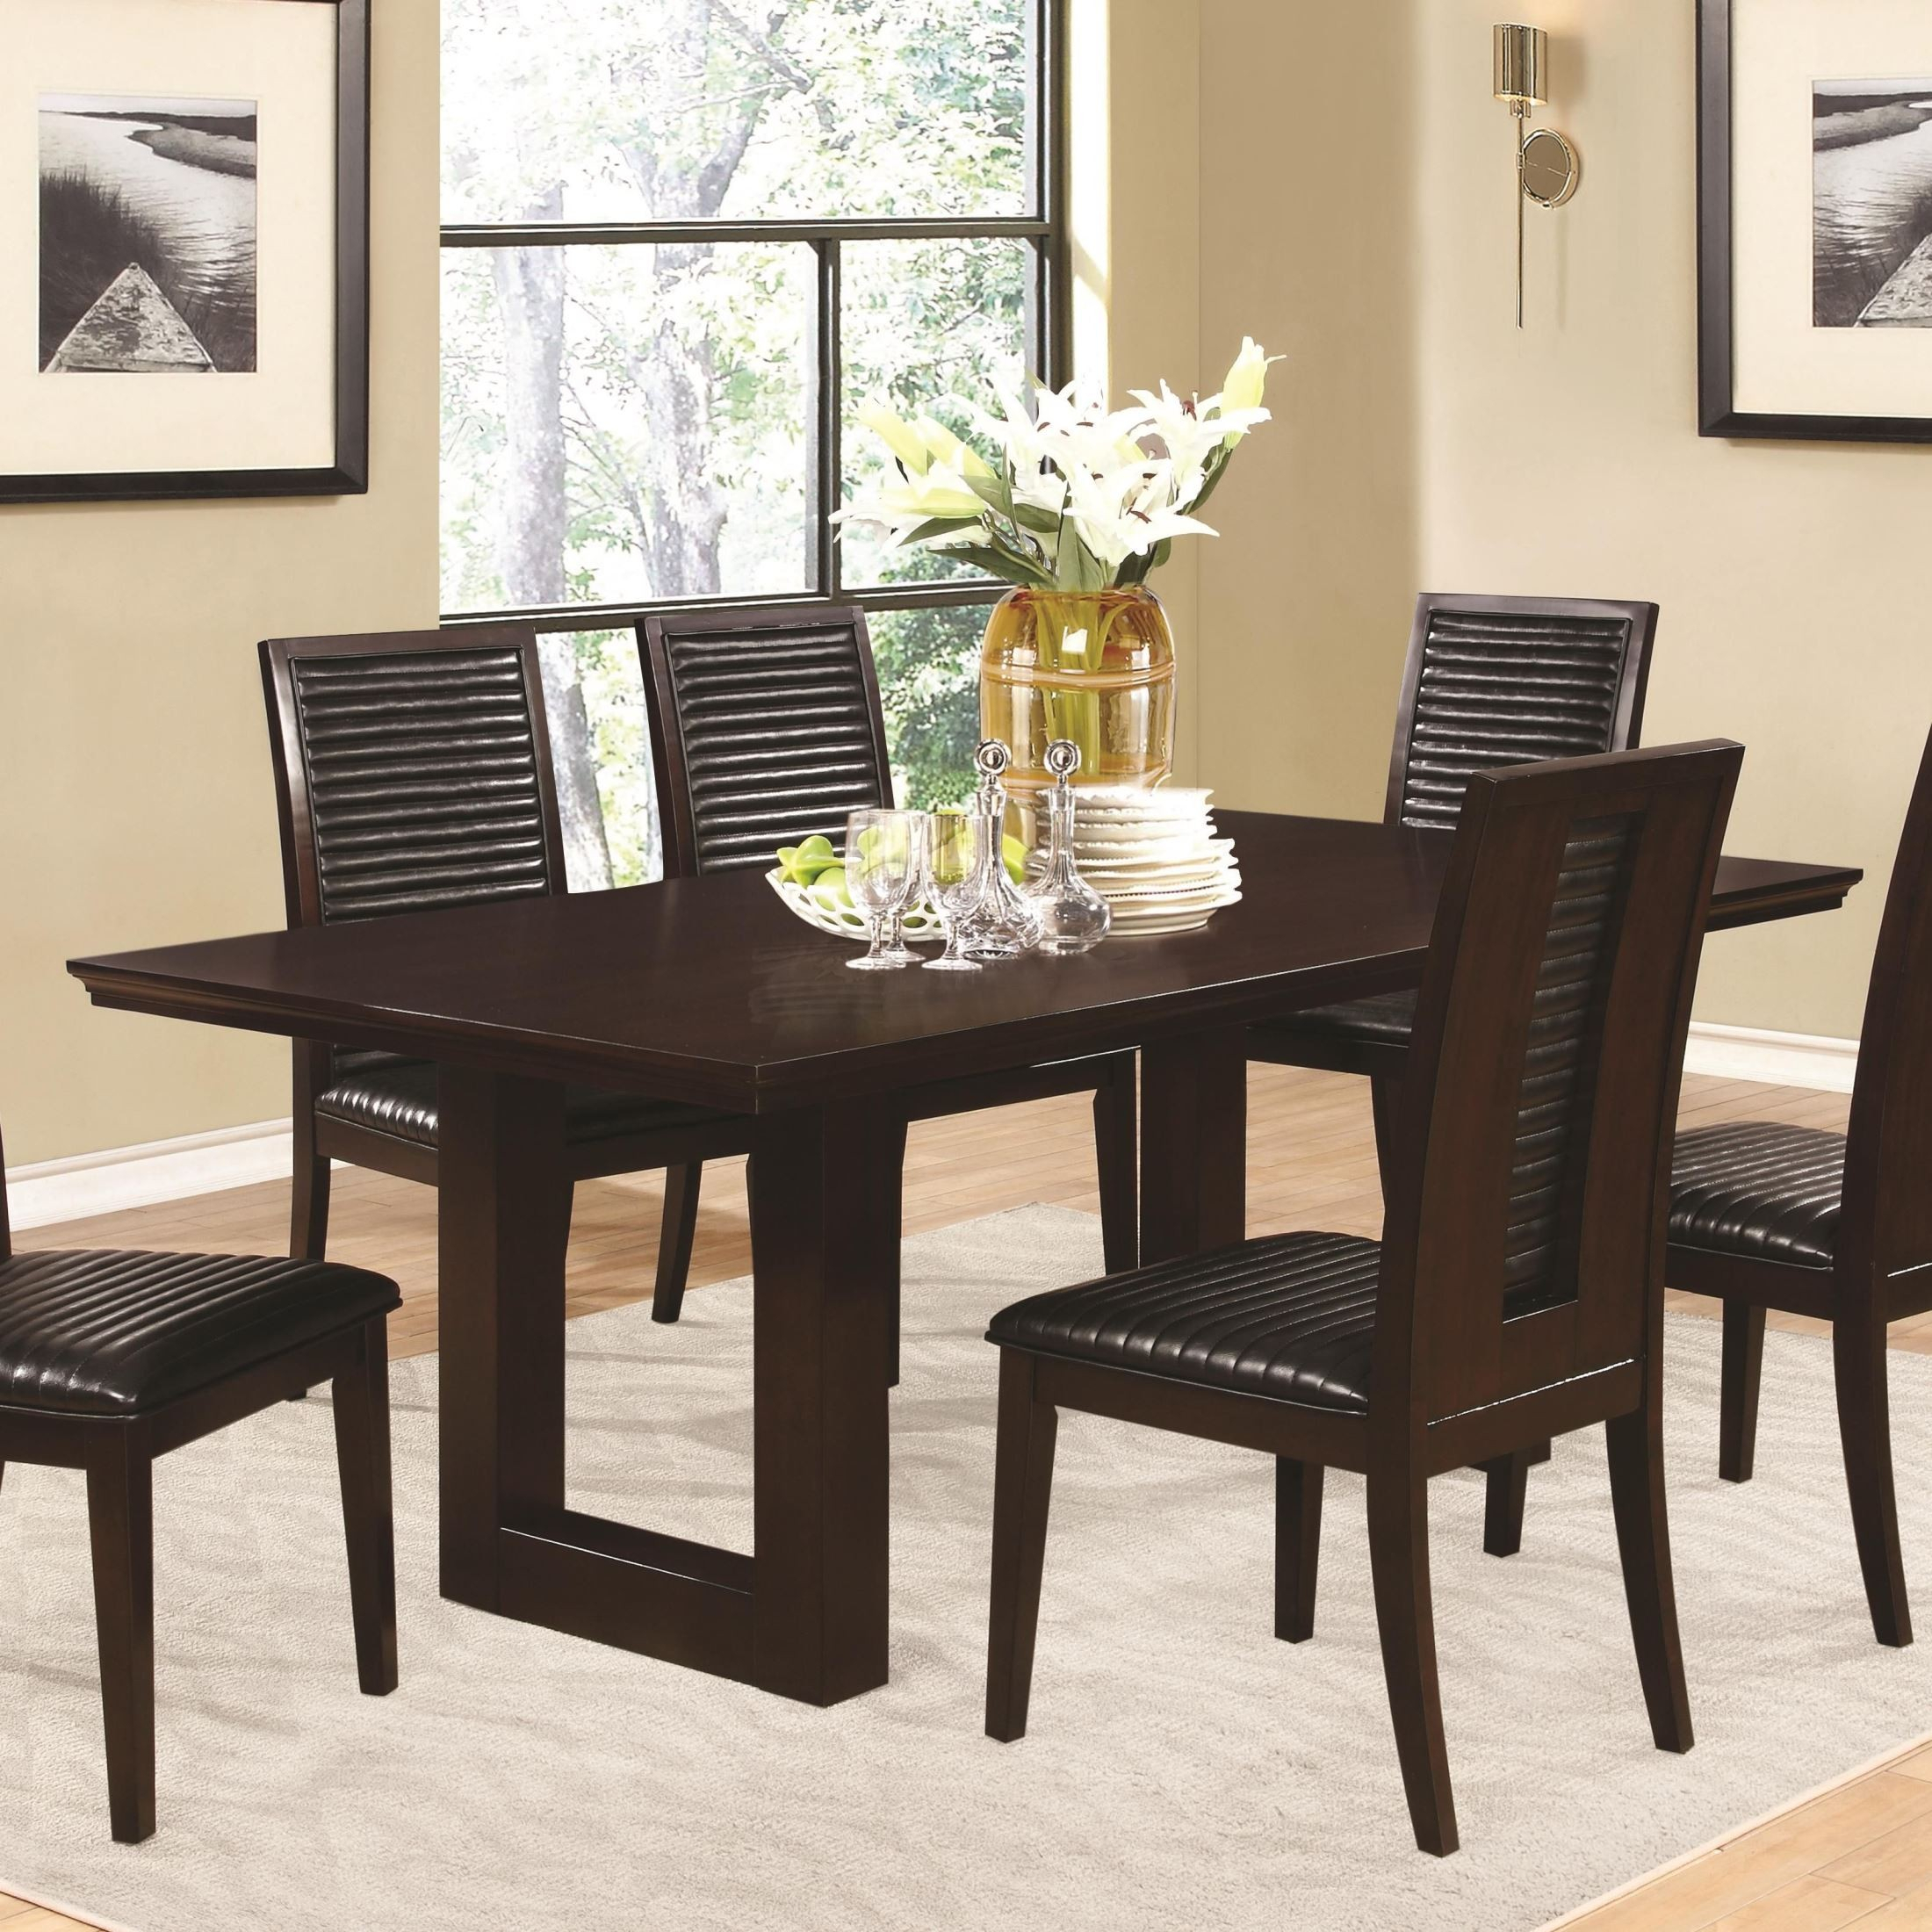 Chester Rectangular Pedestal Dining Table From Coaster Throughout Most Current 47'' Pedestal Dining Tables (View 6 of 15)